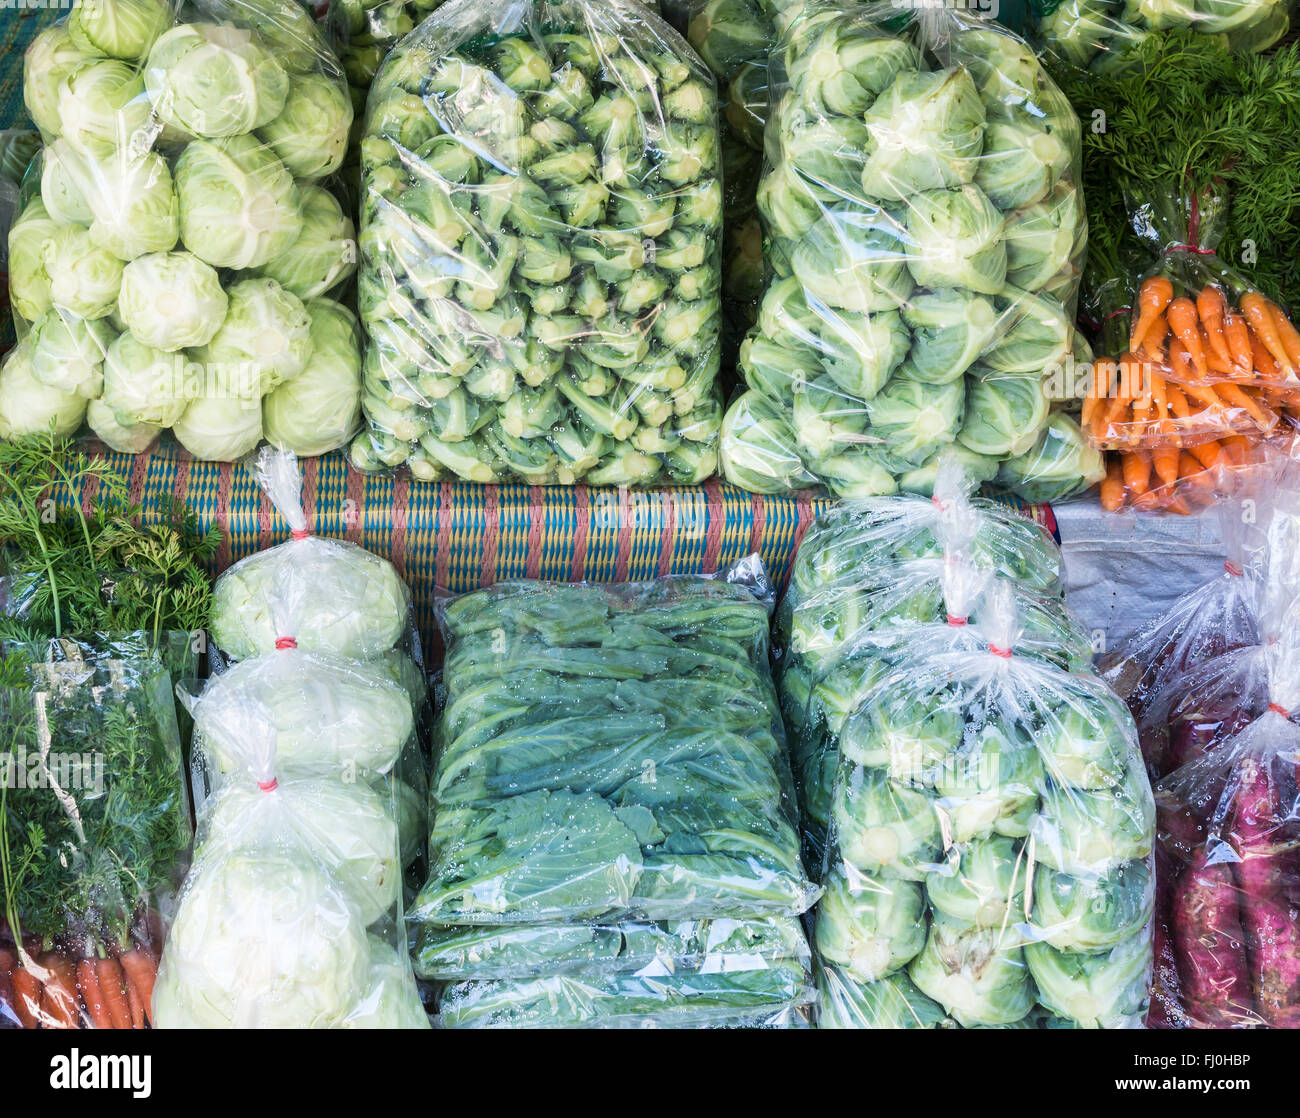 fresh vegetables pack in the plastic bag in the local market.Thailand. - Stock Image